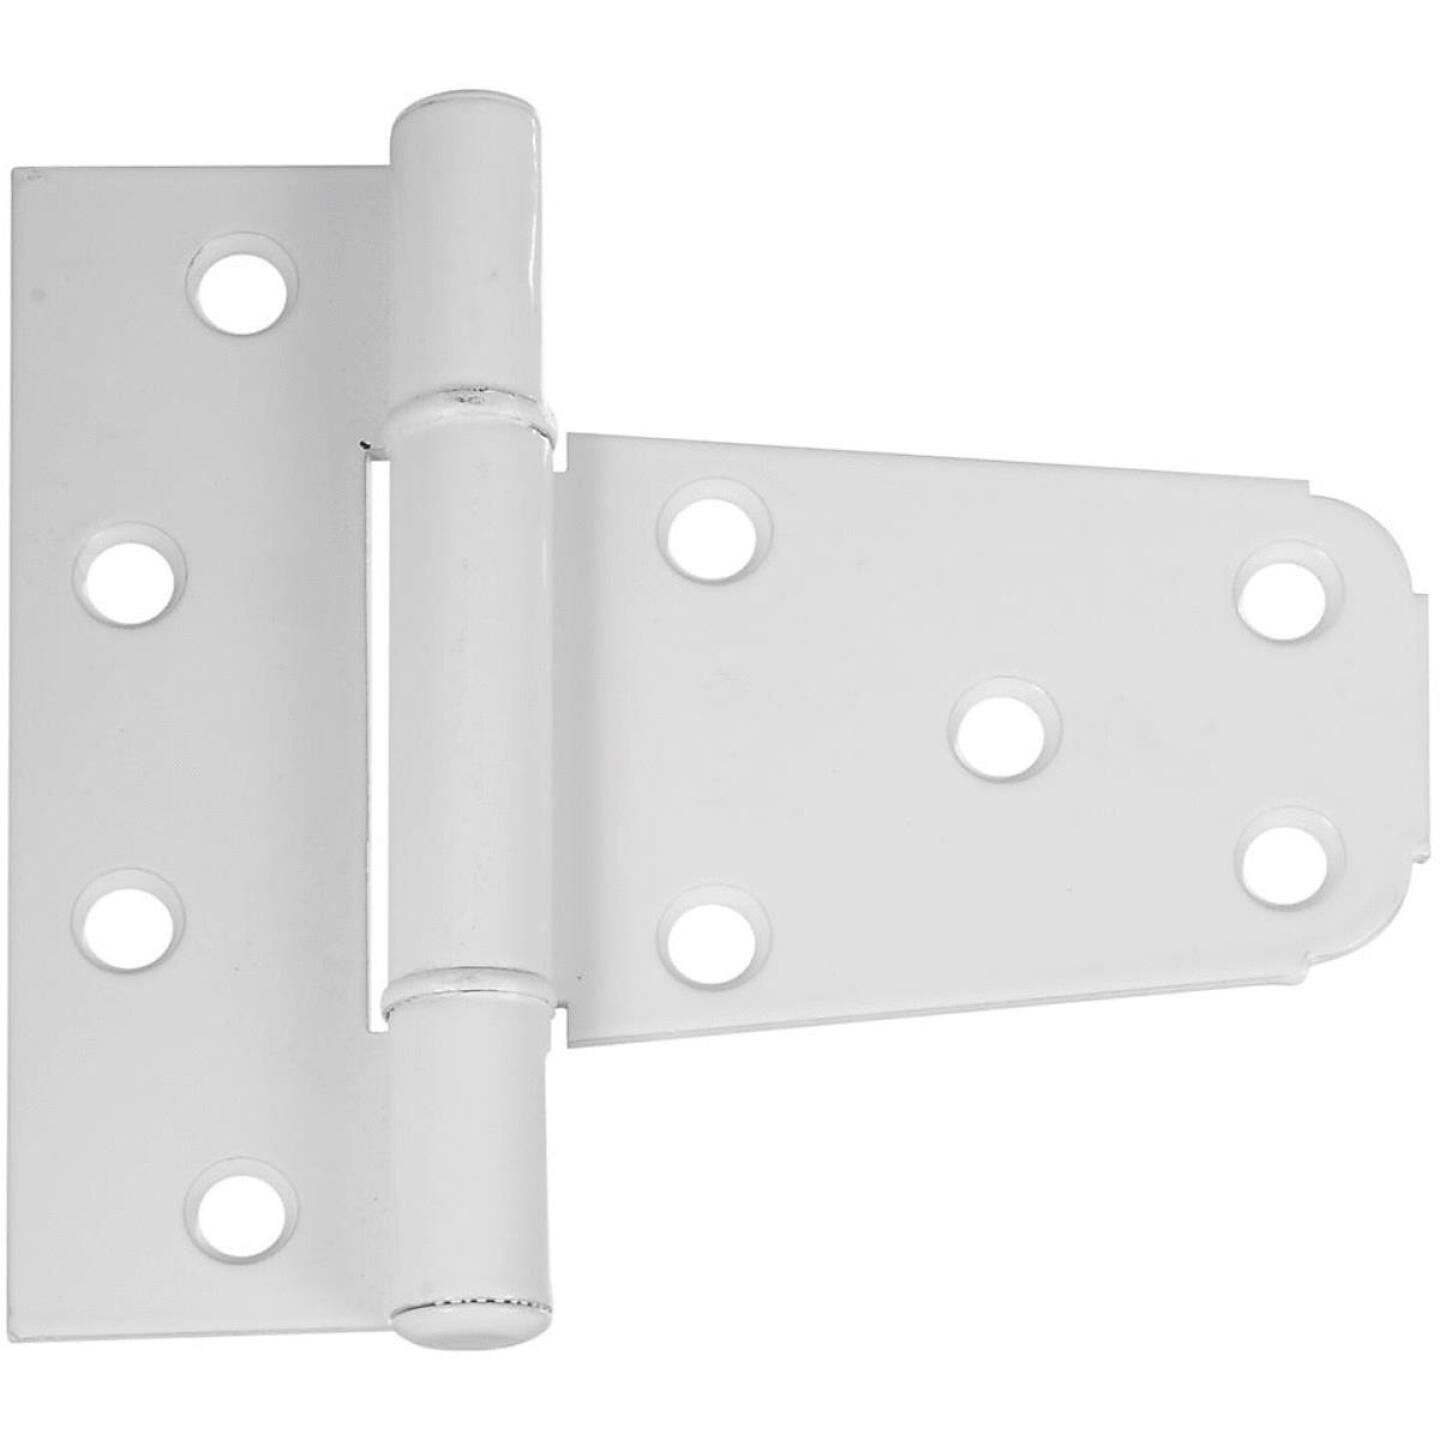 National 3-1/5 In. White Vinyl Fence Gate Hinge Image 1